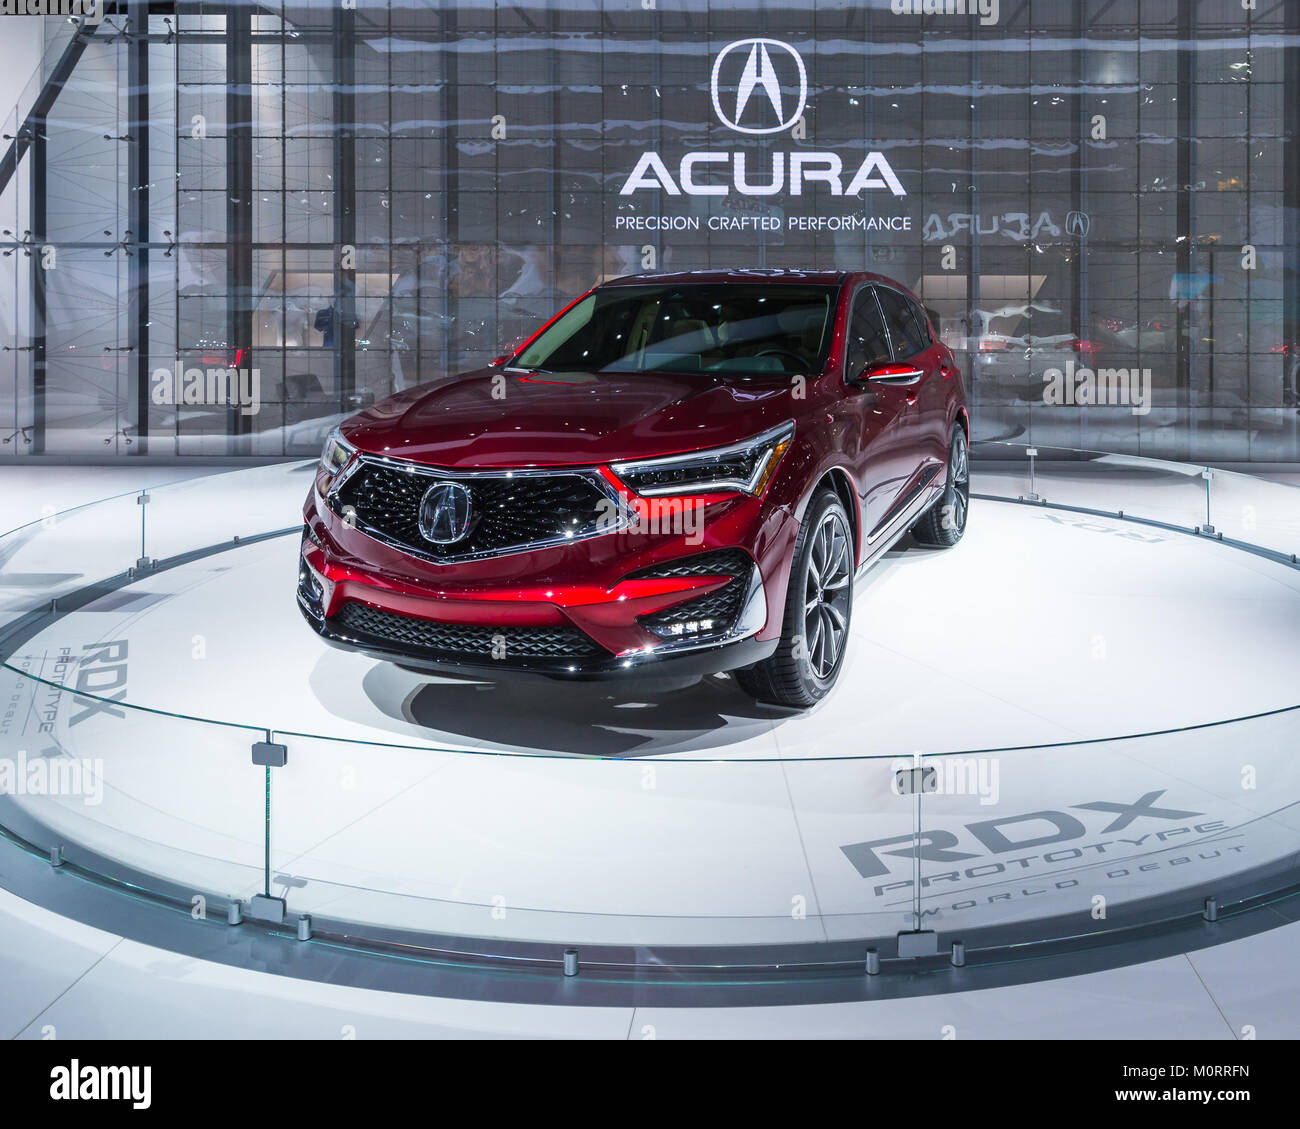 Acura Stock Photos & Acura Stock Images